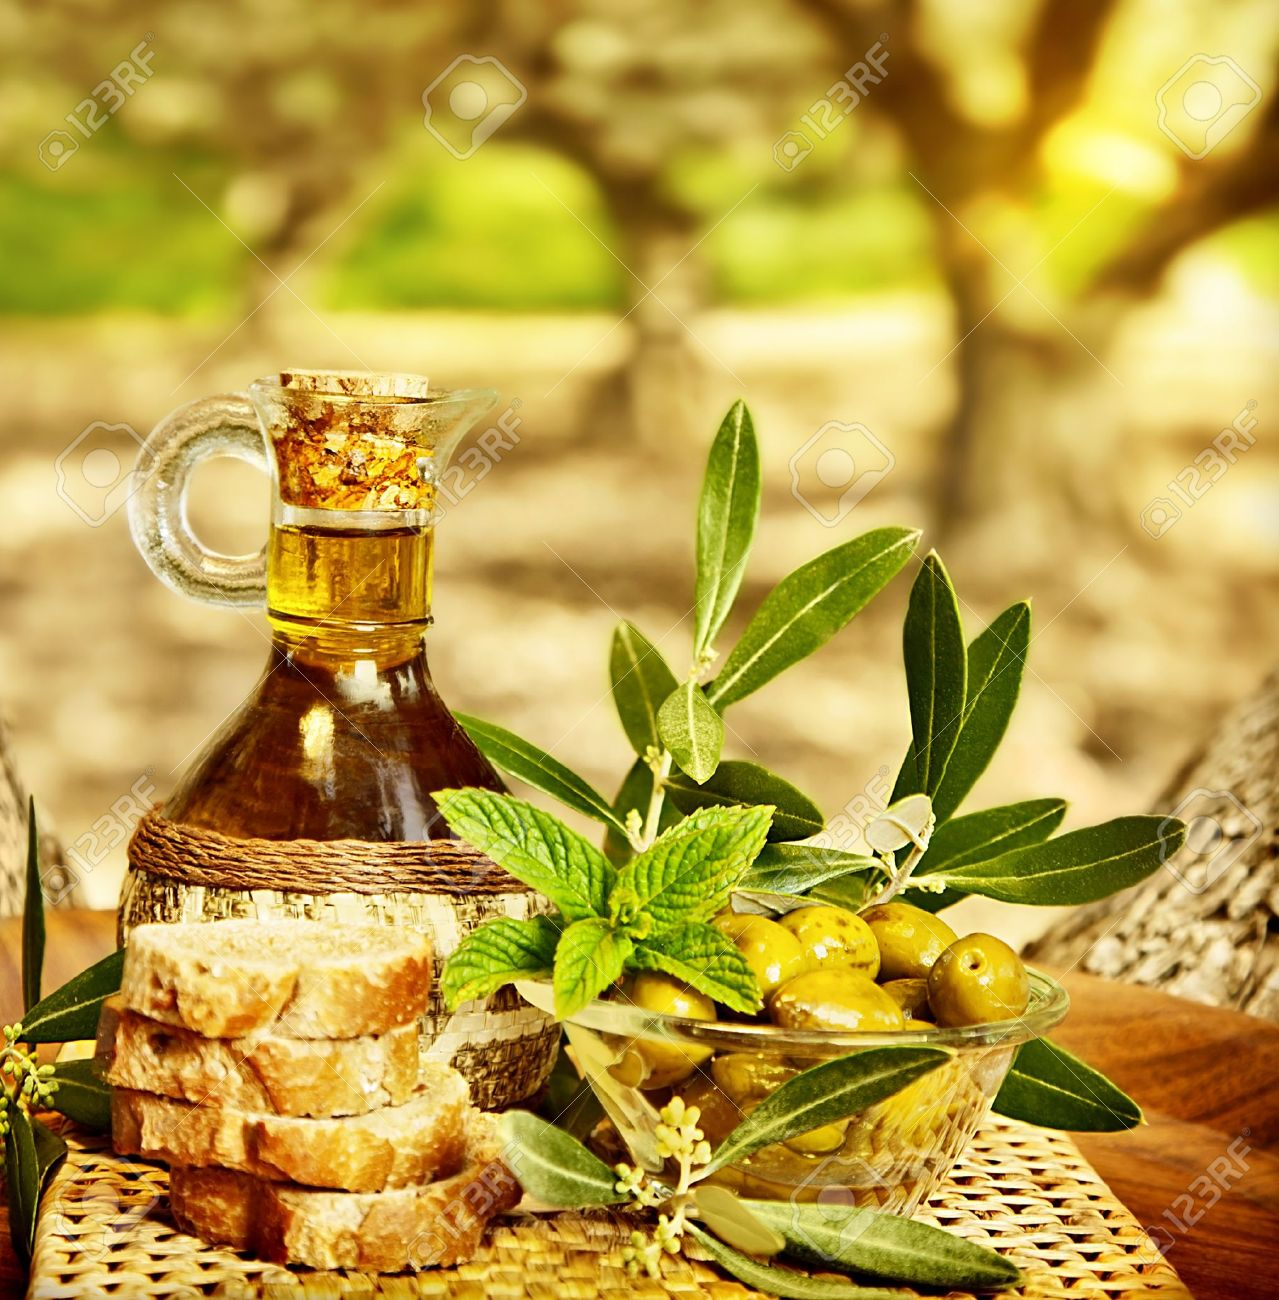 Olives still life, fresh food in garden of olive trees, farm land at countryside of Lebanon, homemade healthy olive oil and bread, harvest time Stock Photo - 13525751